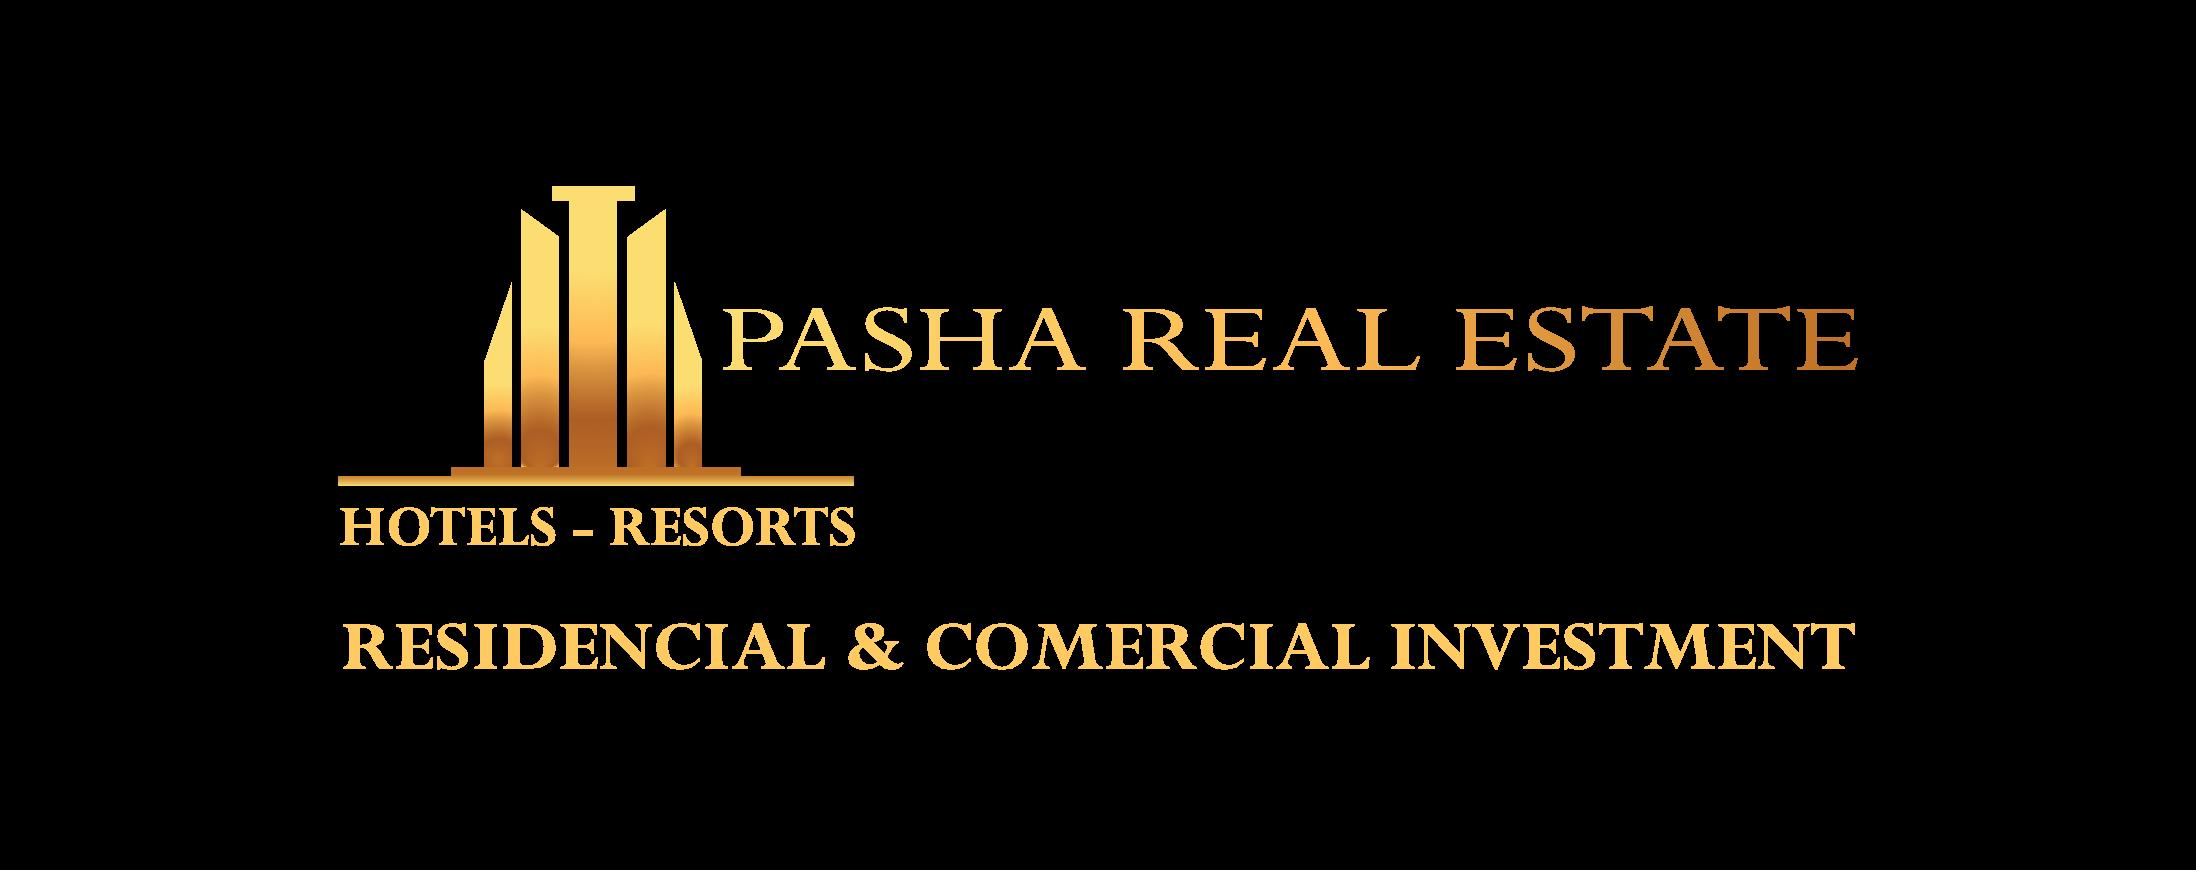 Pasha Real Estate